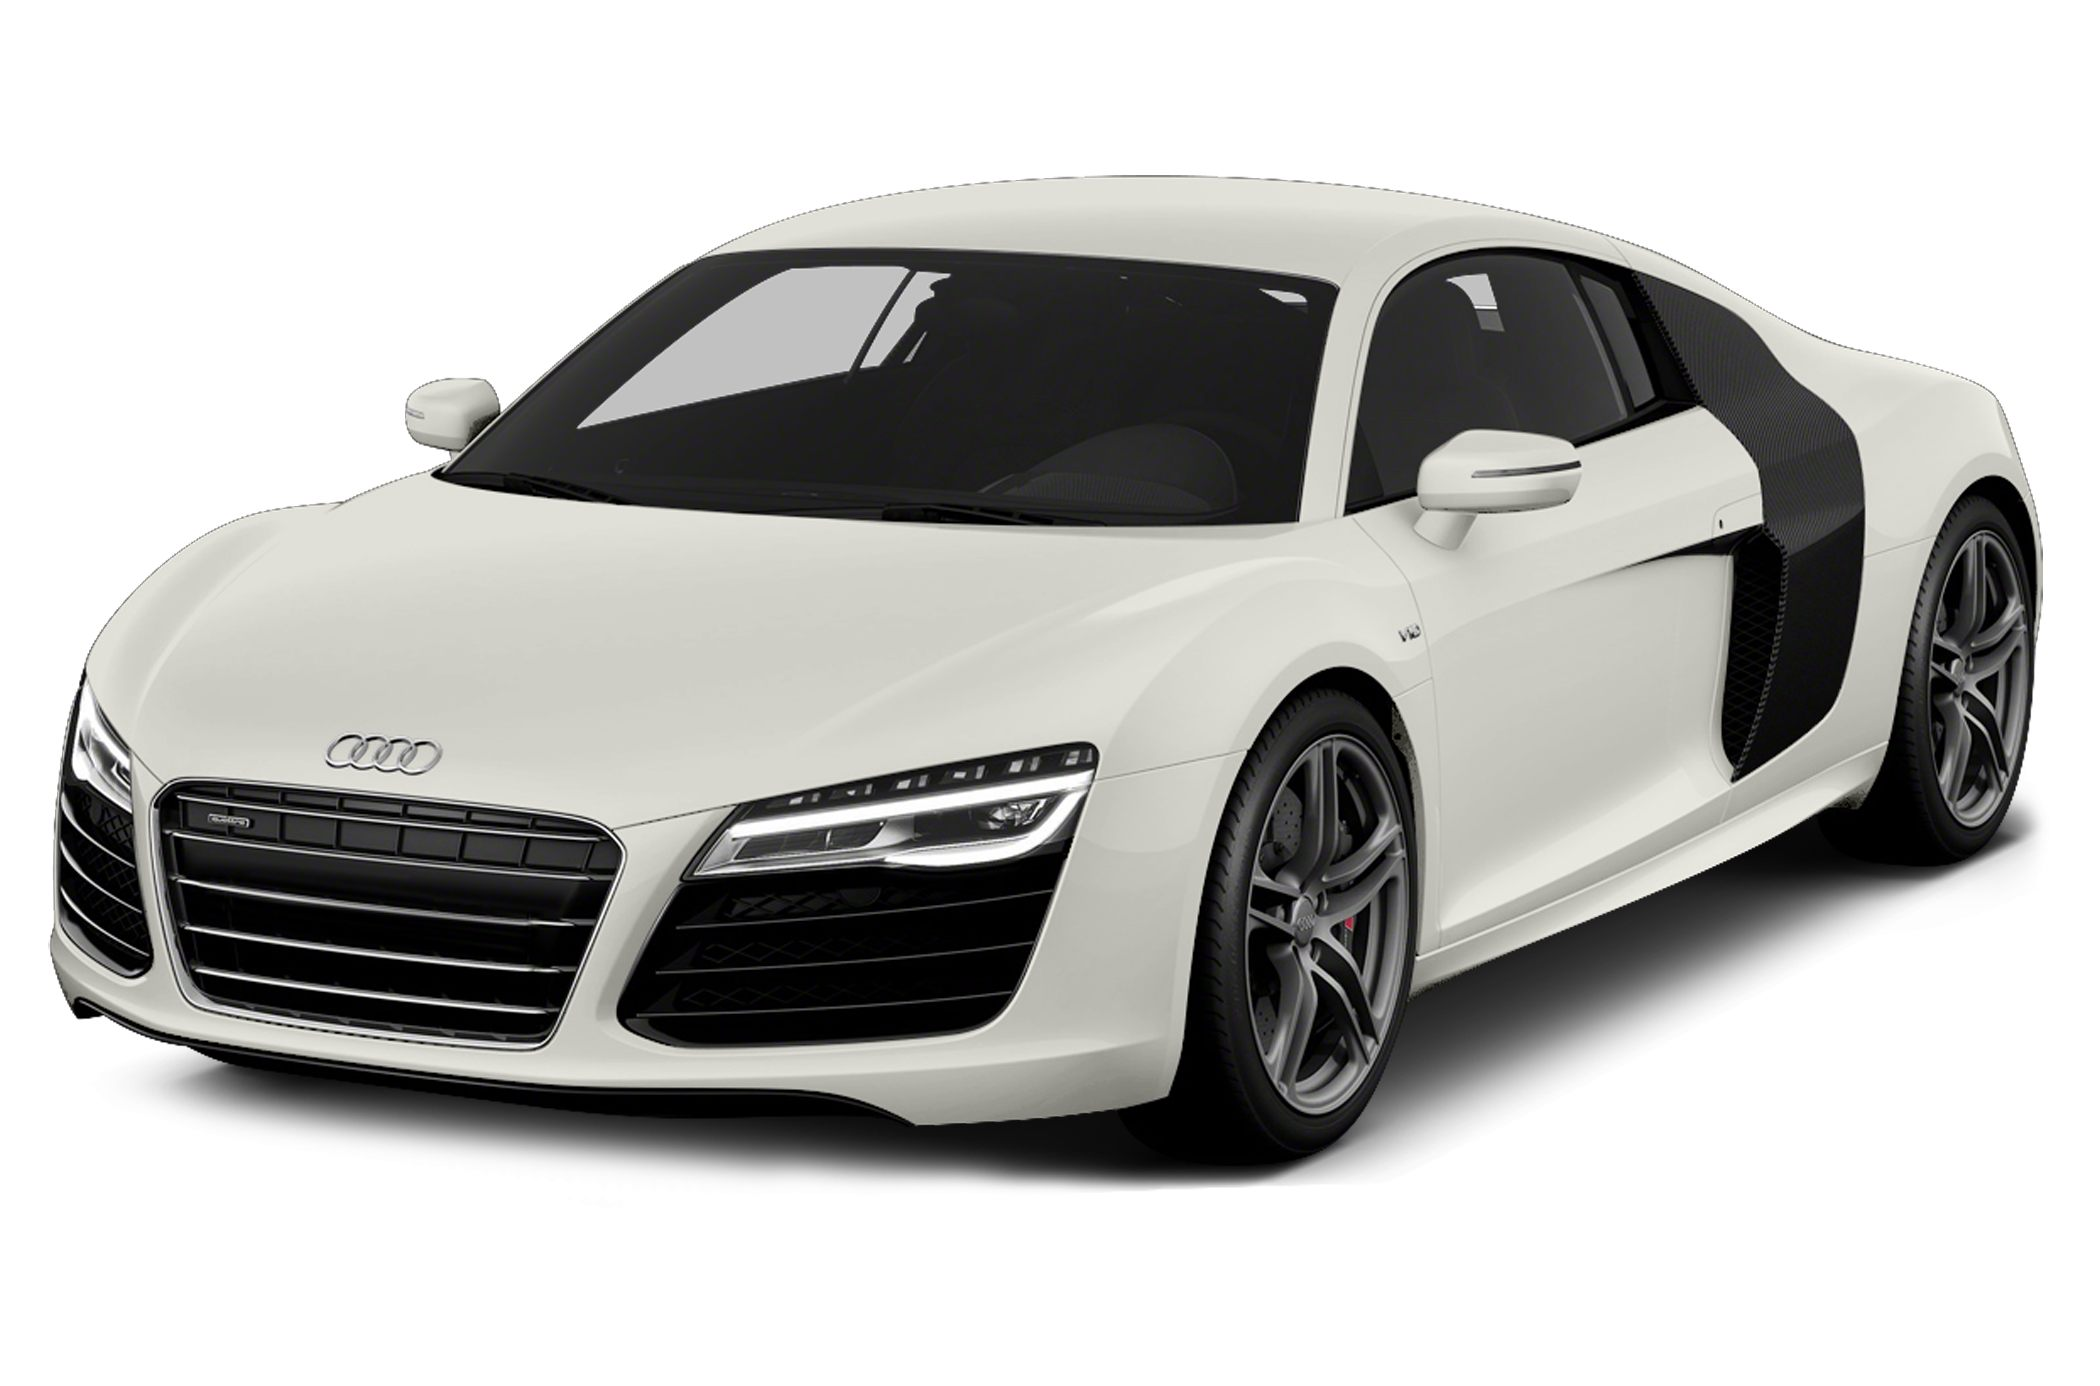 2015 audi r8 specs and prices